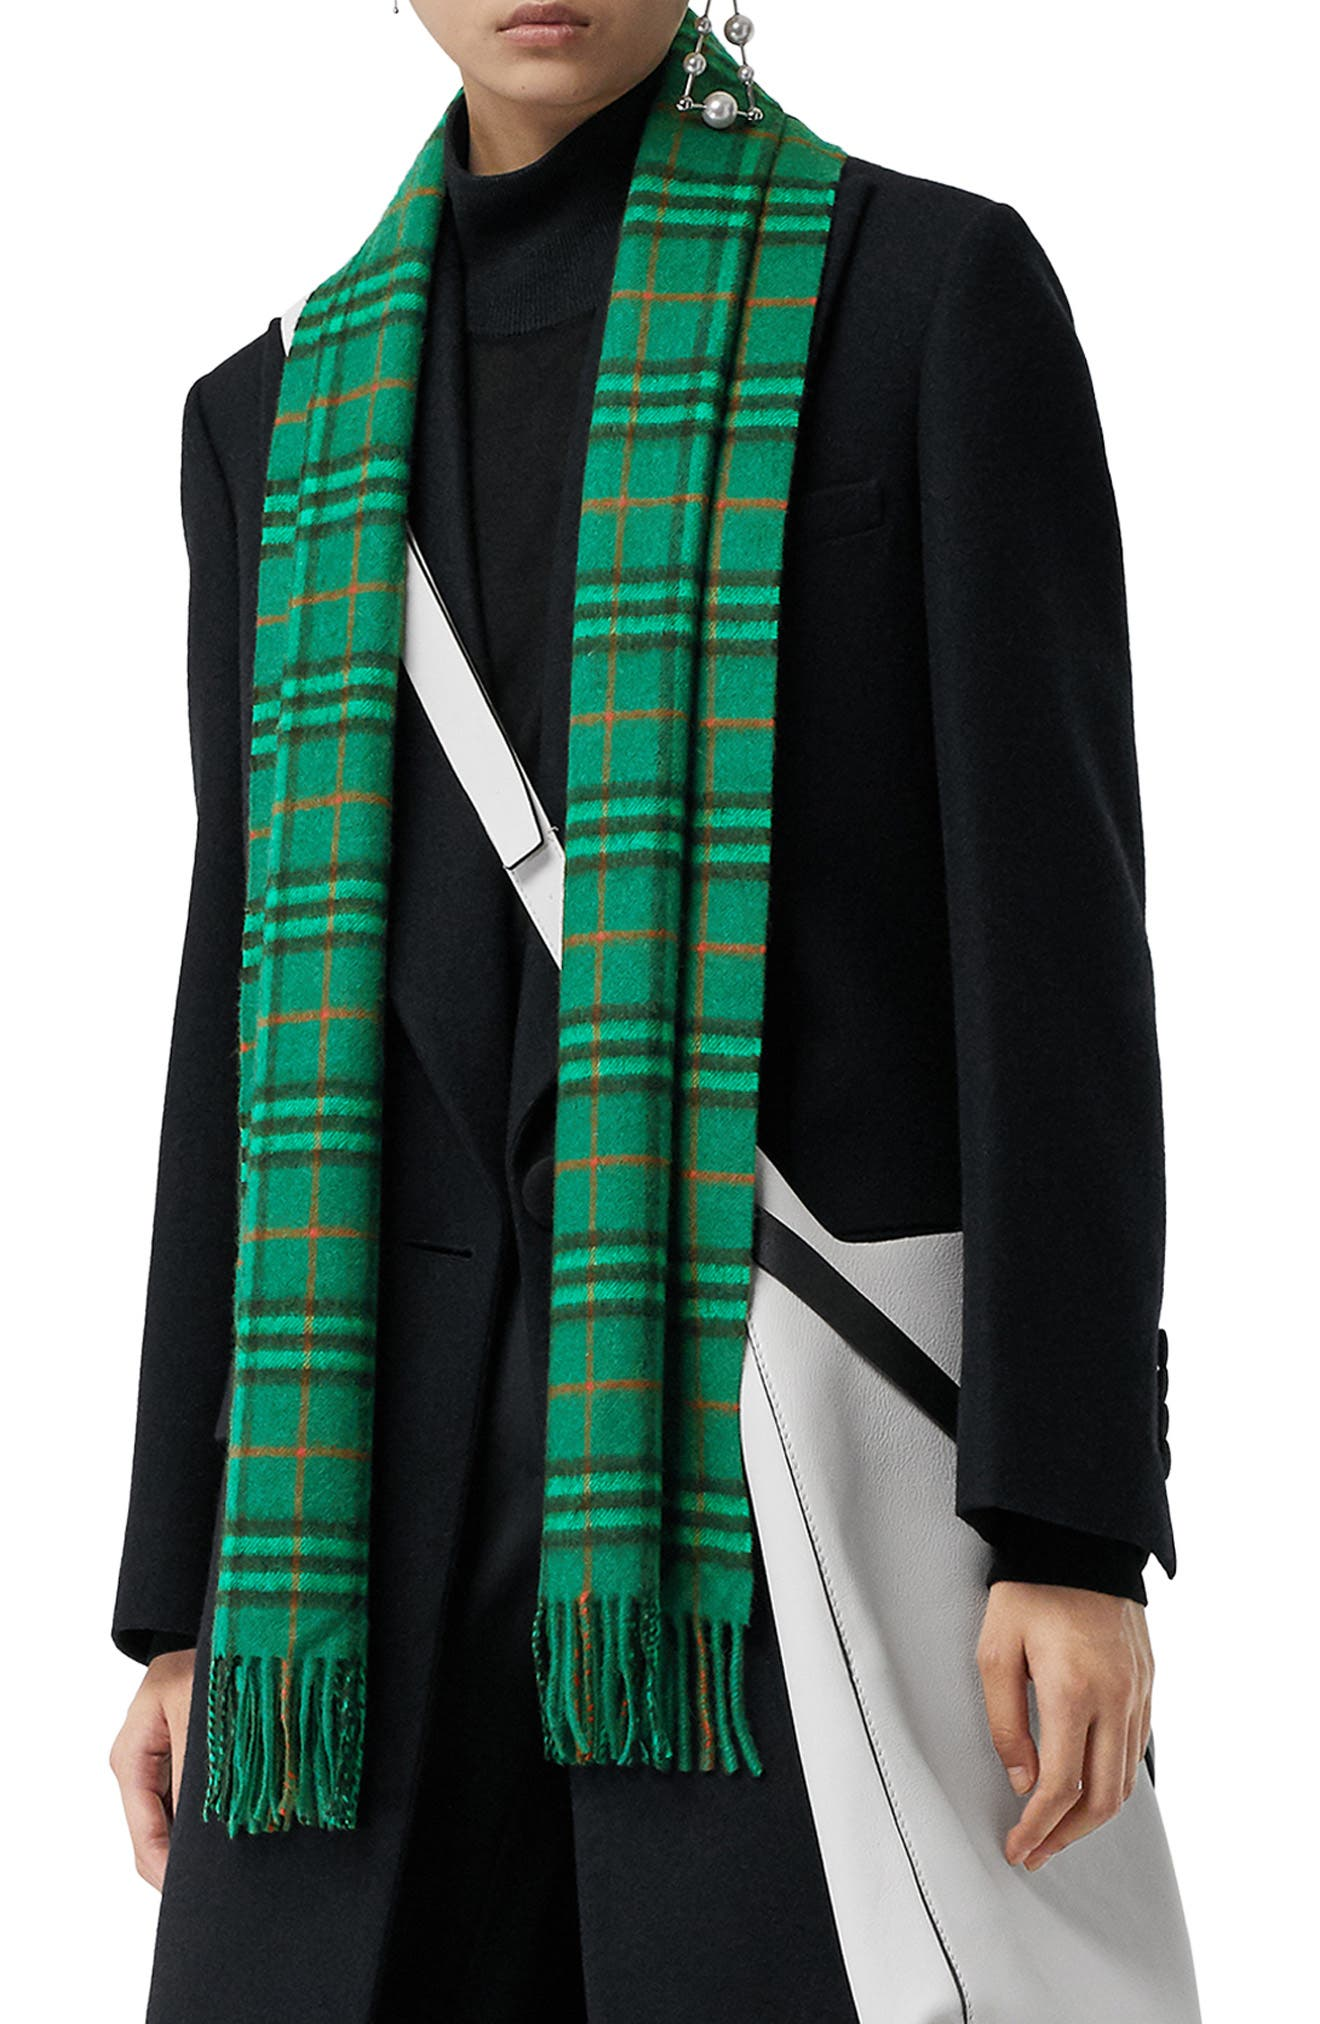 BURBERRY,                             Vintage Check Cashmere Scarf,                             Main thumbnail 1, color,                             VIRIDIAN GREEN